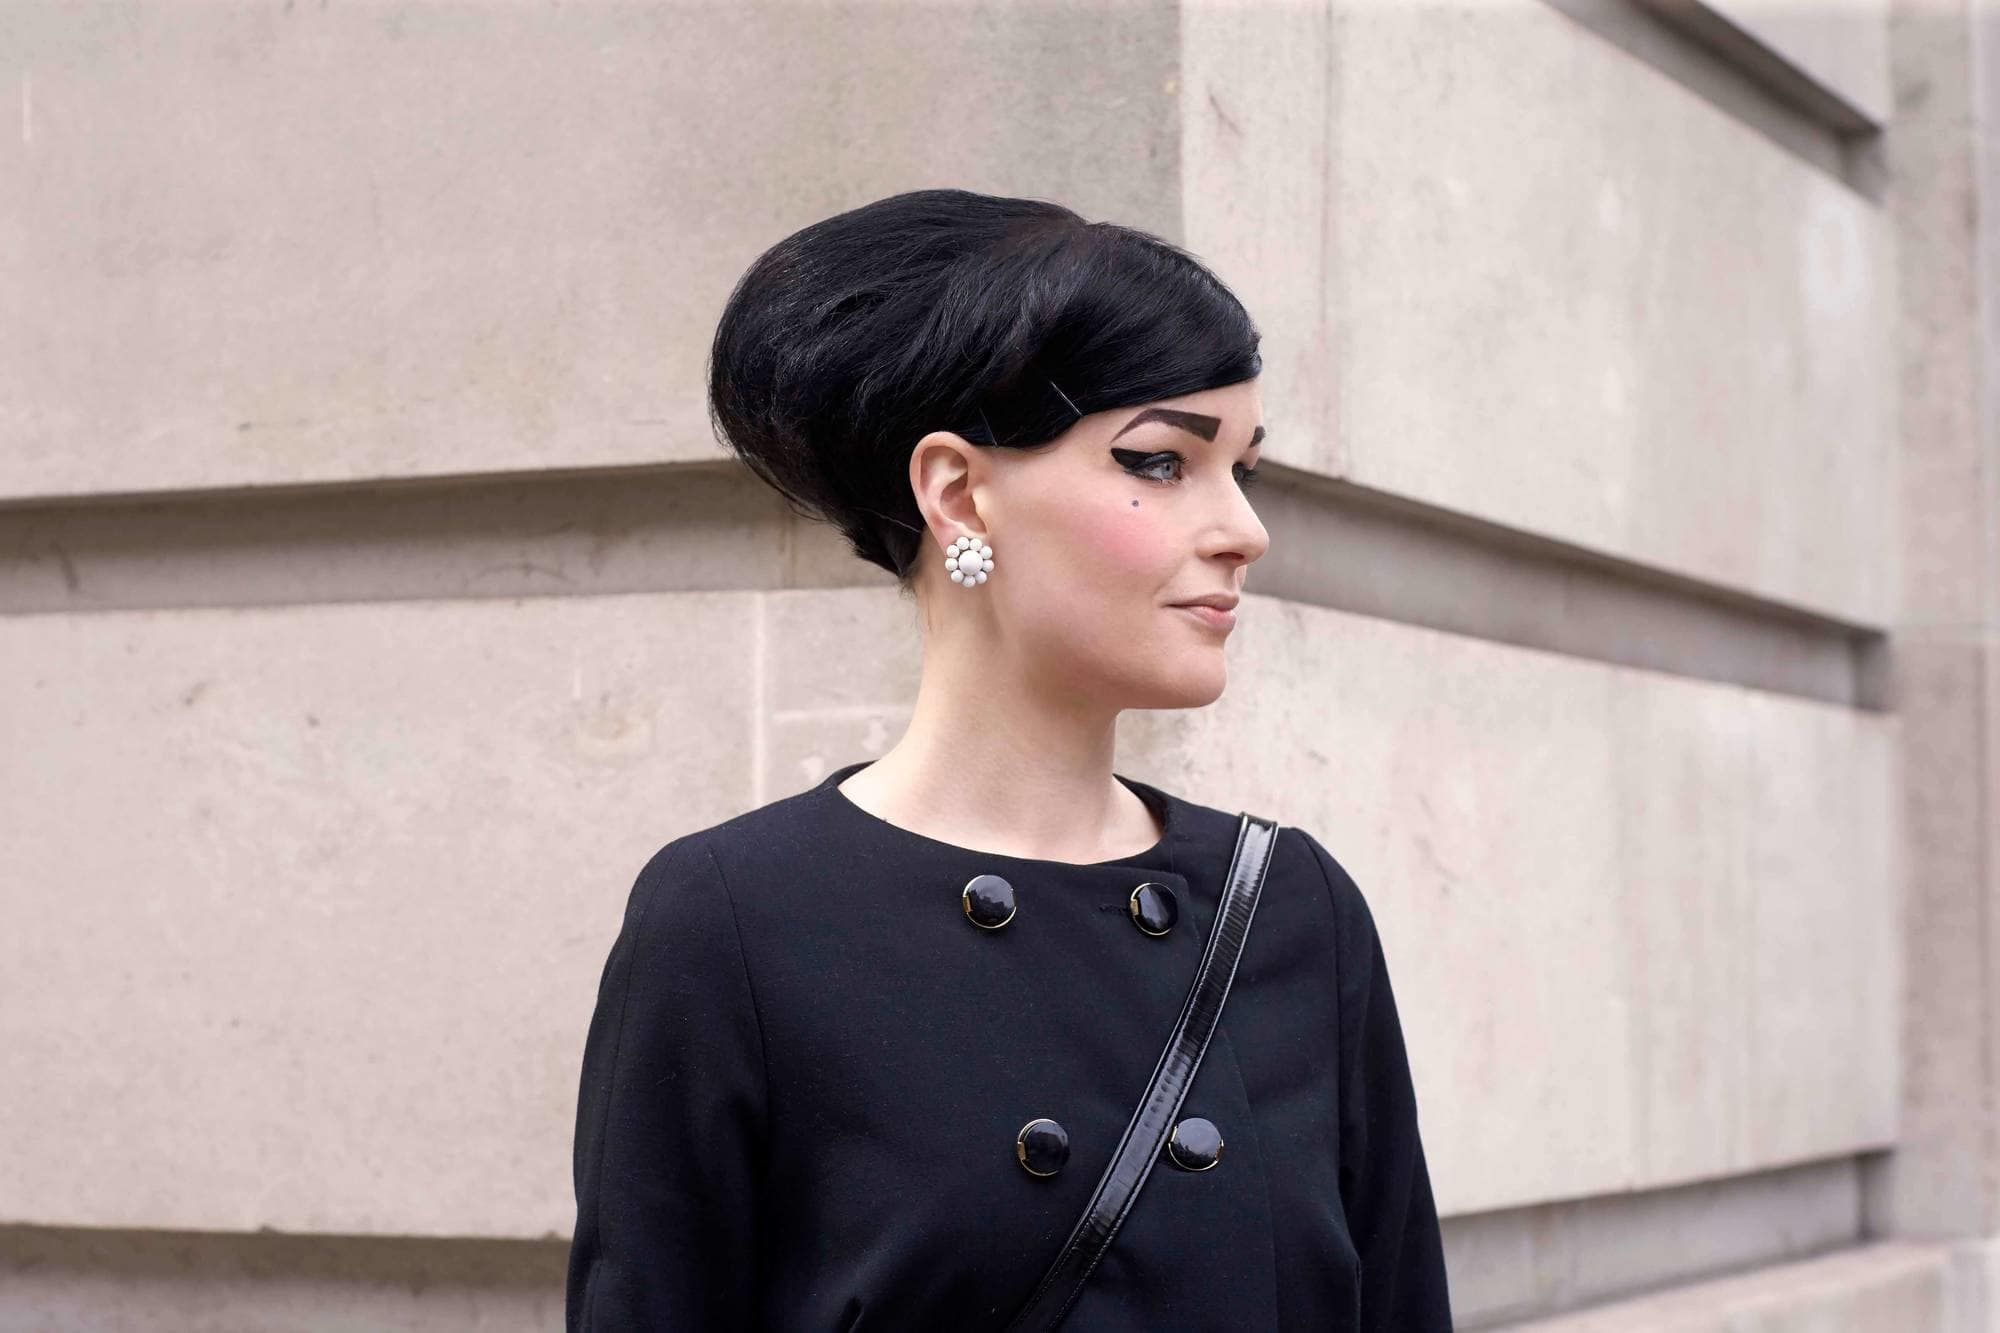 Goth Hairstyles 10 Modern Looks That Fit Your Personality